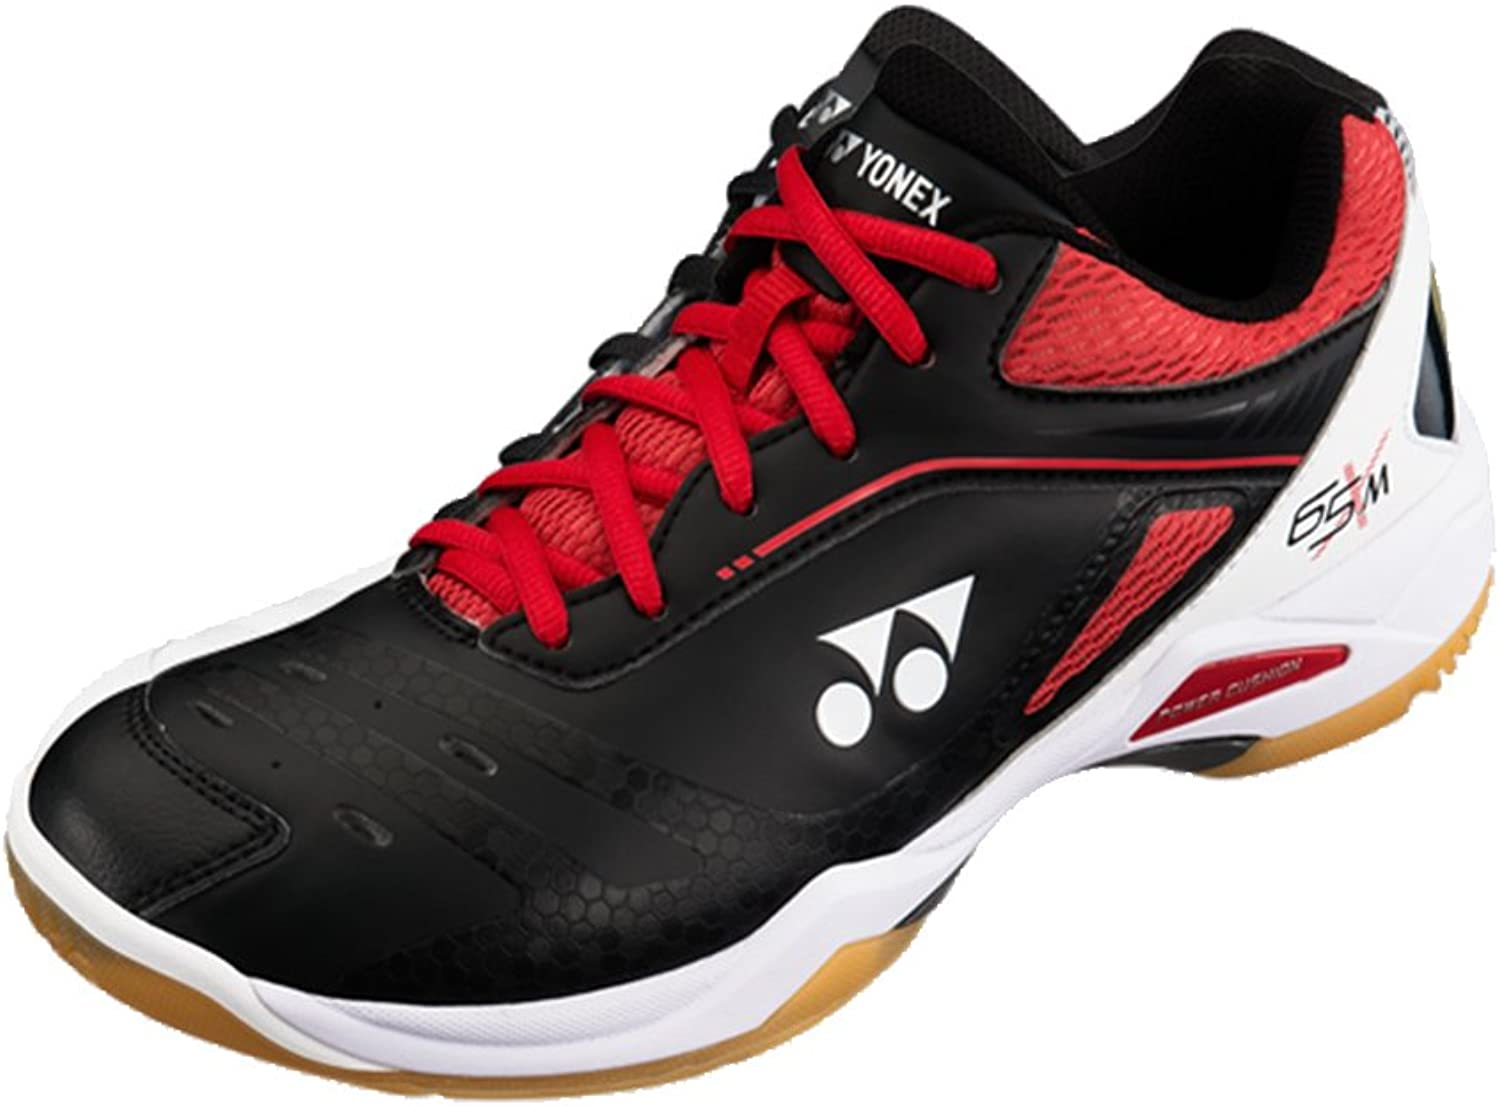 Yonex 65 X Men's 2018 New Badminton shoes